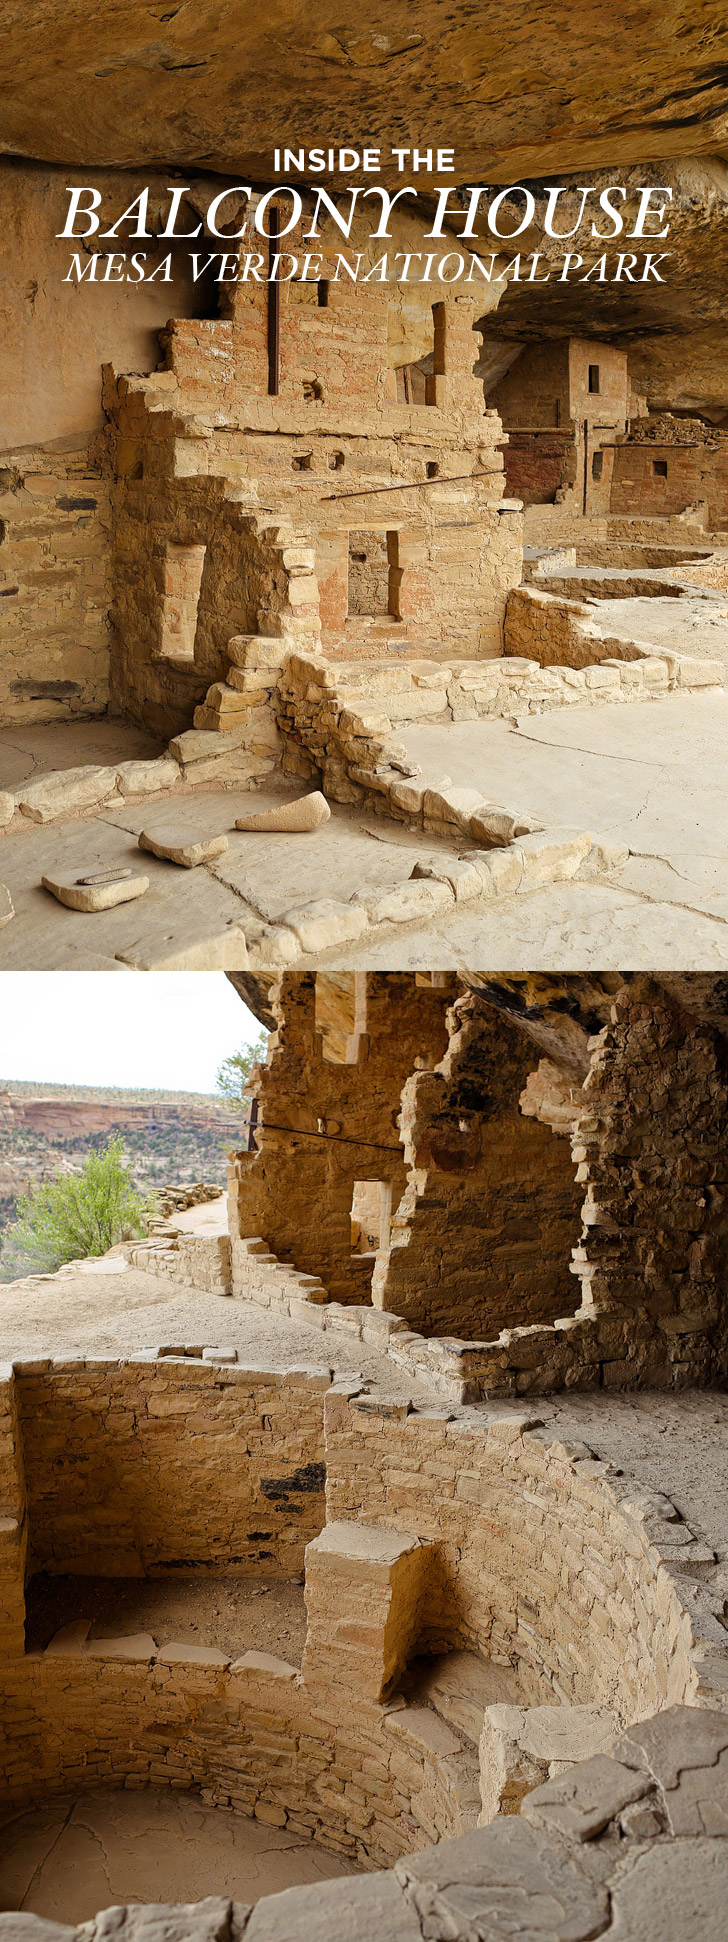 Balcony House Mesa Verde National Park - ancient cliff dwellings built by Ancestral Puebloans // localadventurer.com